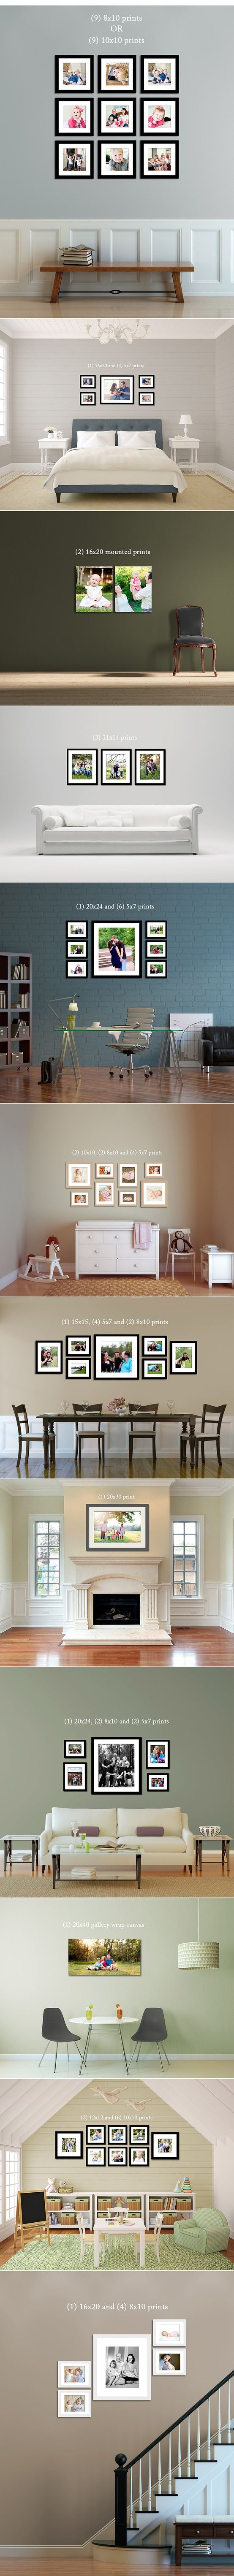 gallery print set ideas... @ Adorable Decor : Beautiful Decorating Ideas!Adorable Decor : Beautiful Decorating Ideas!